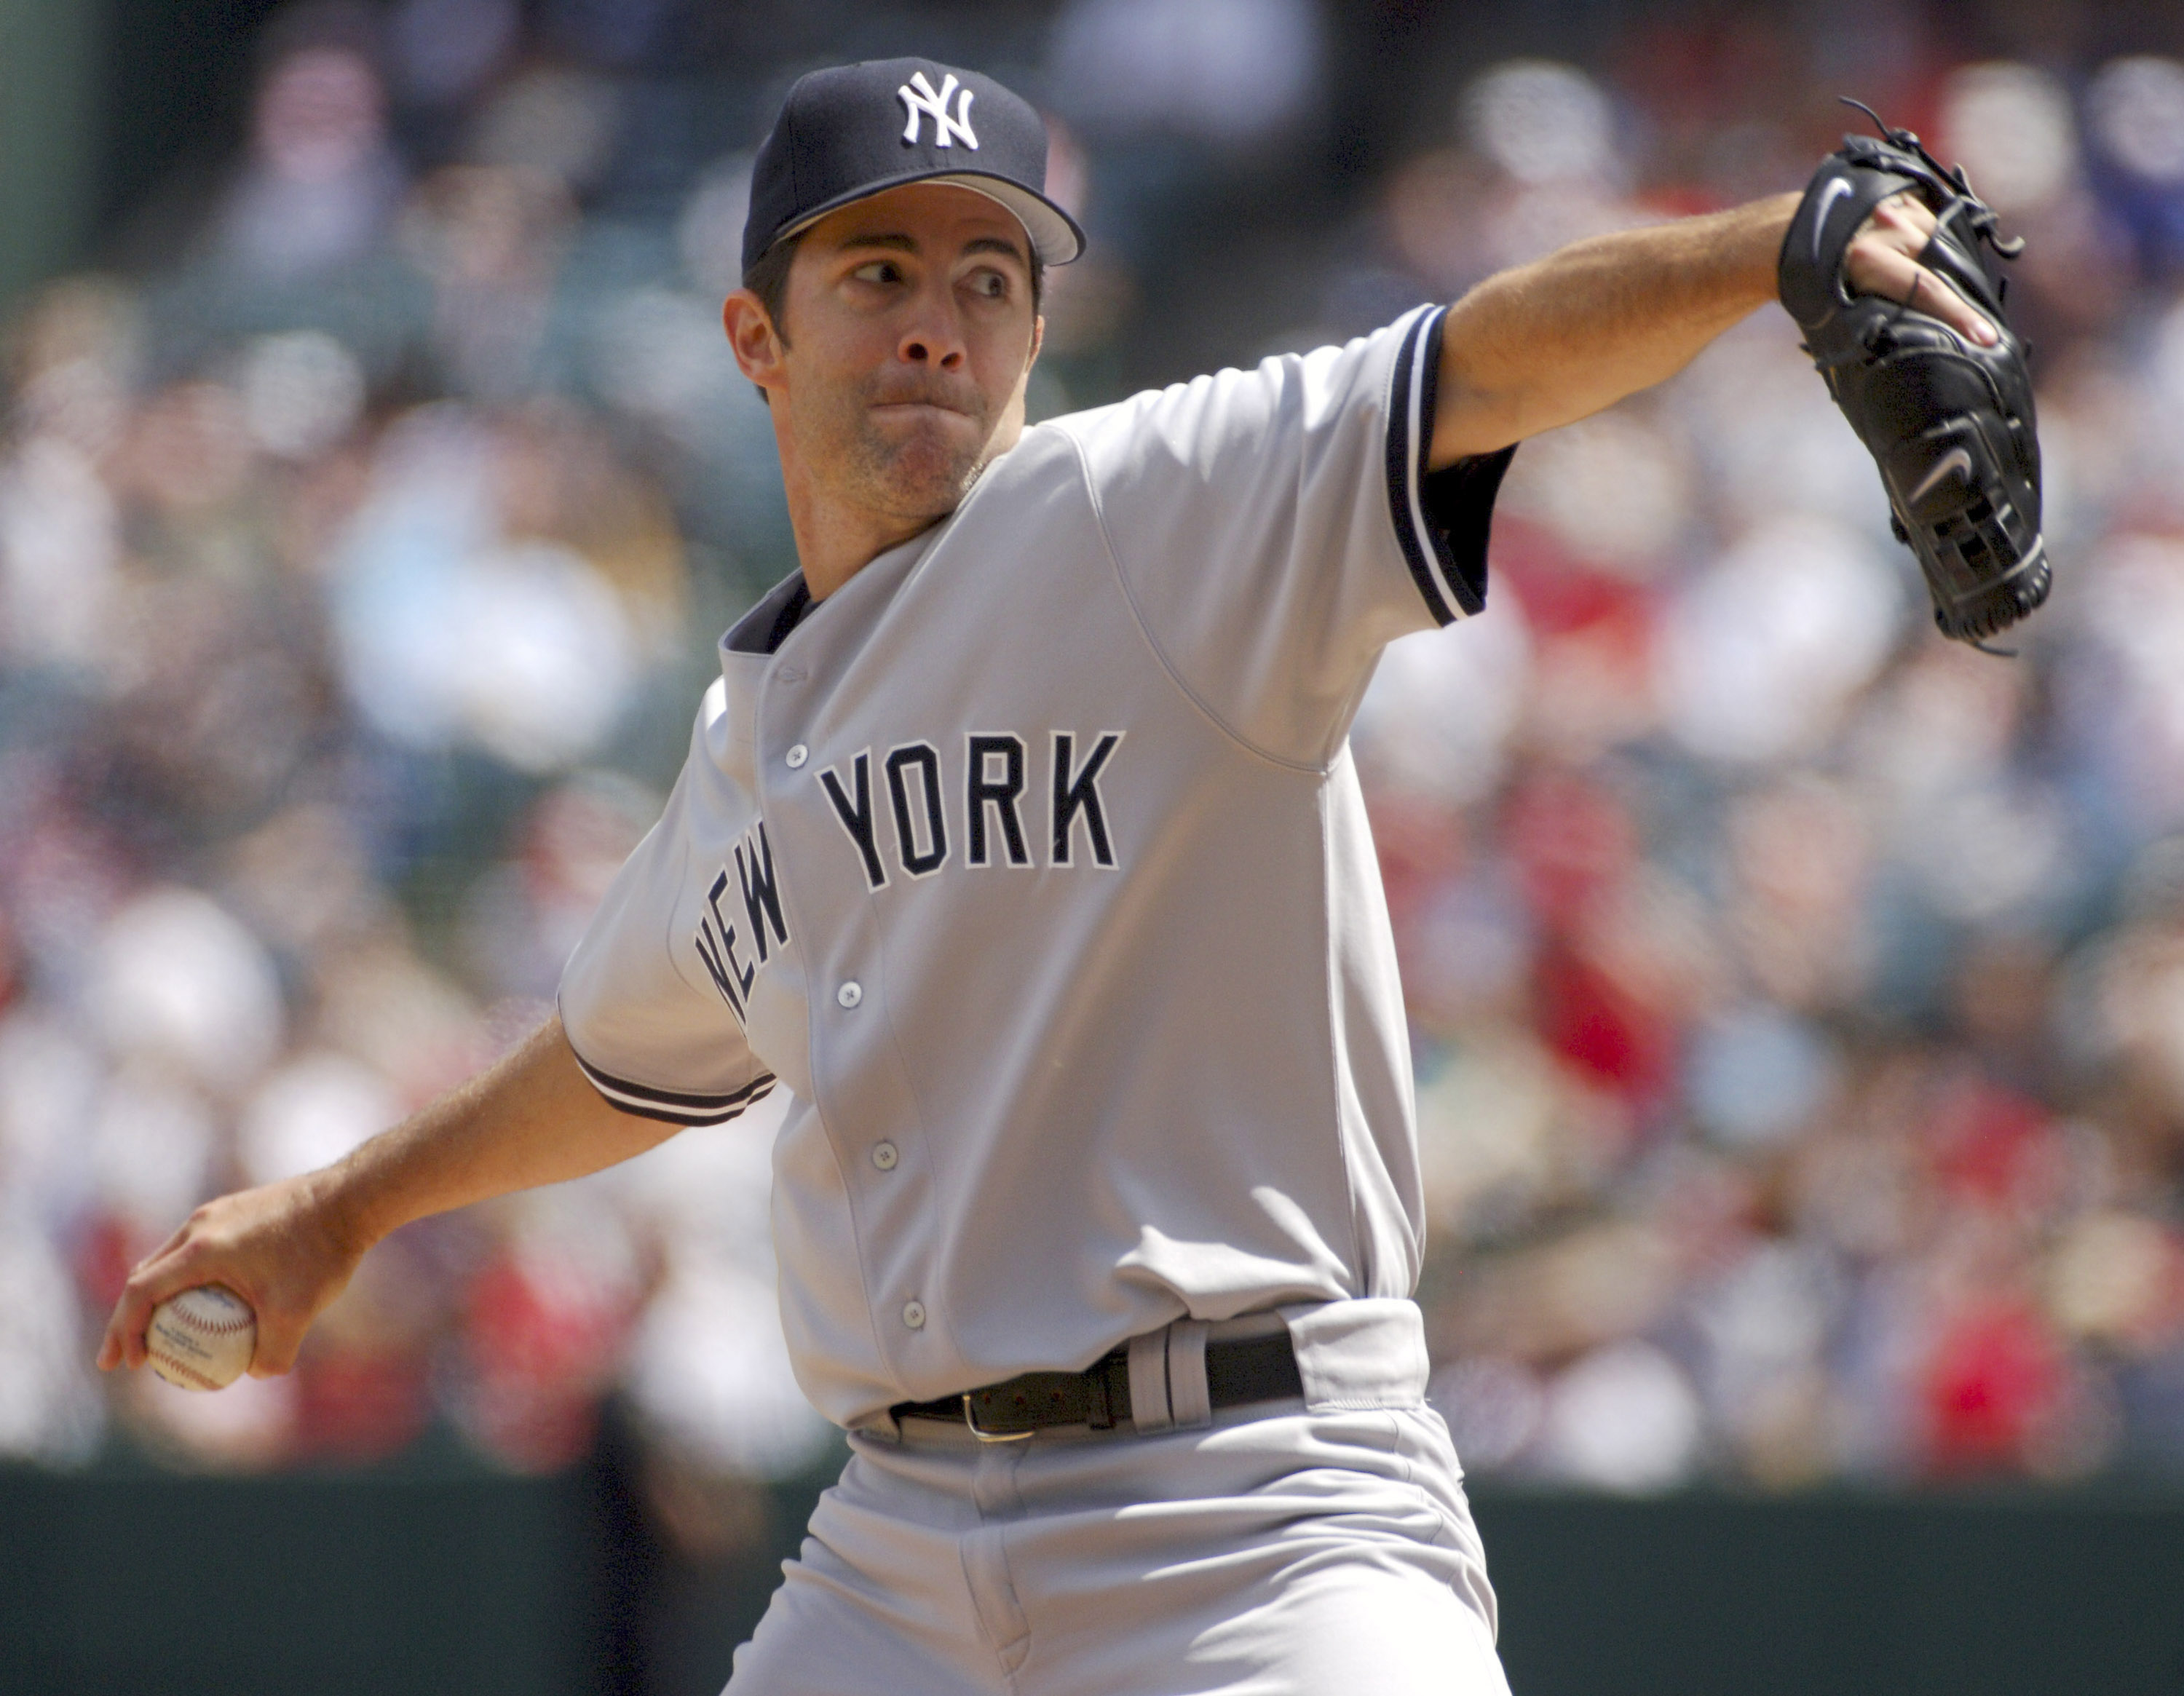 New York Yankees starter Mike Mussina pitches during 10-1 victory over the Los Angeles Angels of Anaheim at Angel Stadium in Anaheim, Calif. on Sunday, April 9, 2006. (Photo by Kirby Lee/Getty Images)